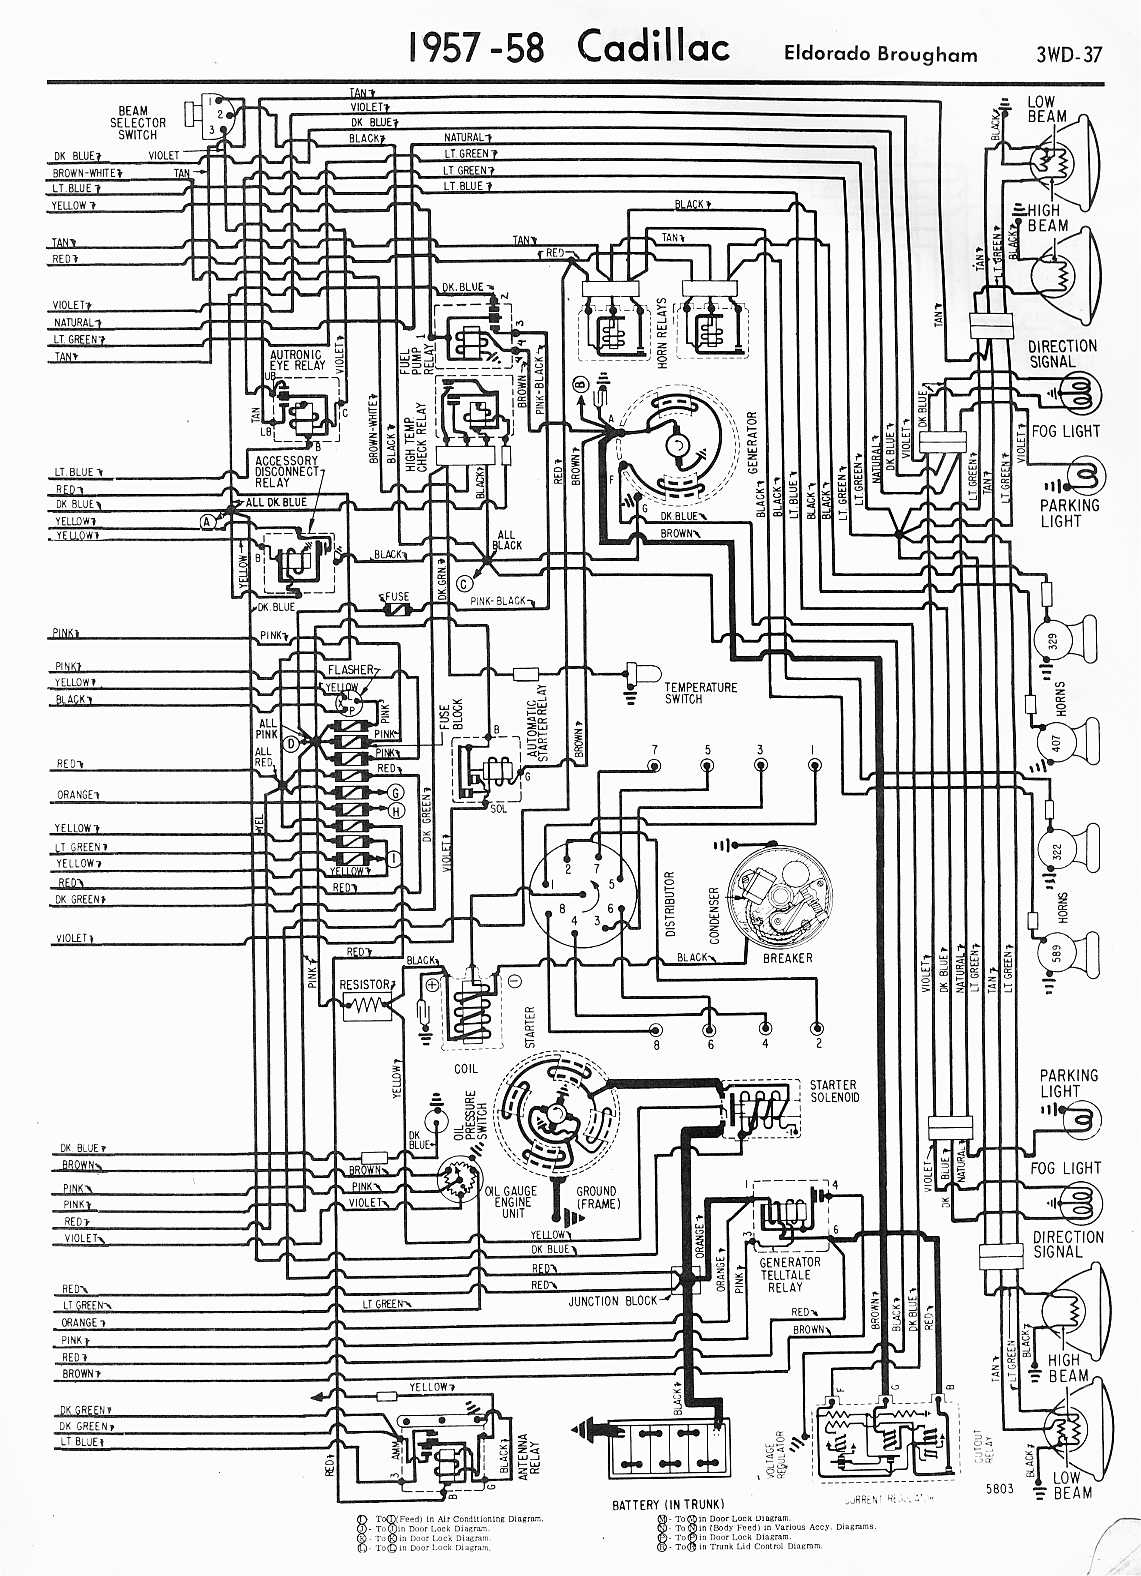 Powerseat Bg Img besides Ac Issue Bg Mg moreover Powerseat Bg Img furthermore Sm Ac Vacuumdiagram in addition Cadillac Eldorado Brougham Wiring Diagram. on 1958 cadillac eldorado wiring diagram